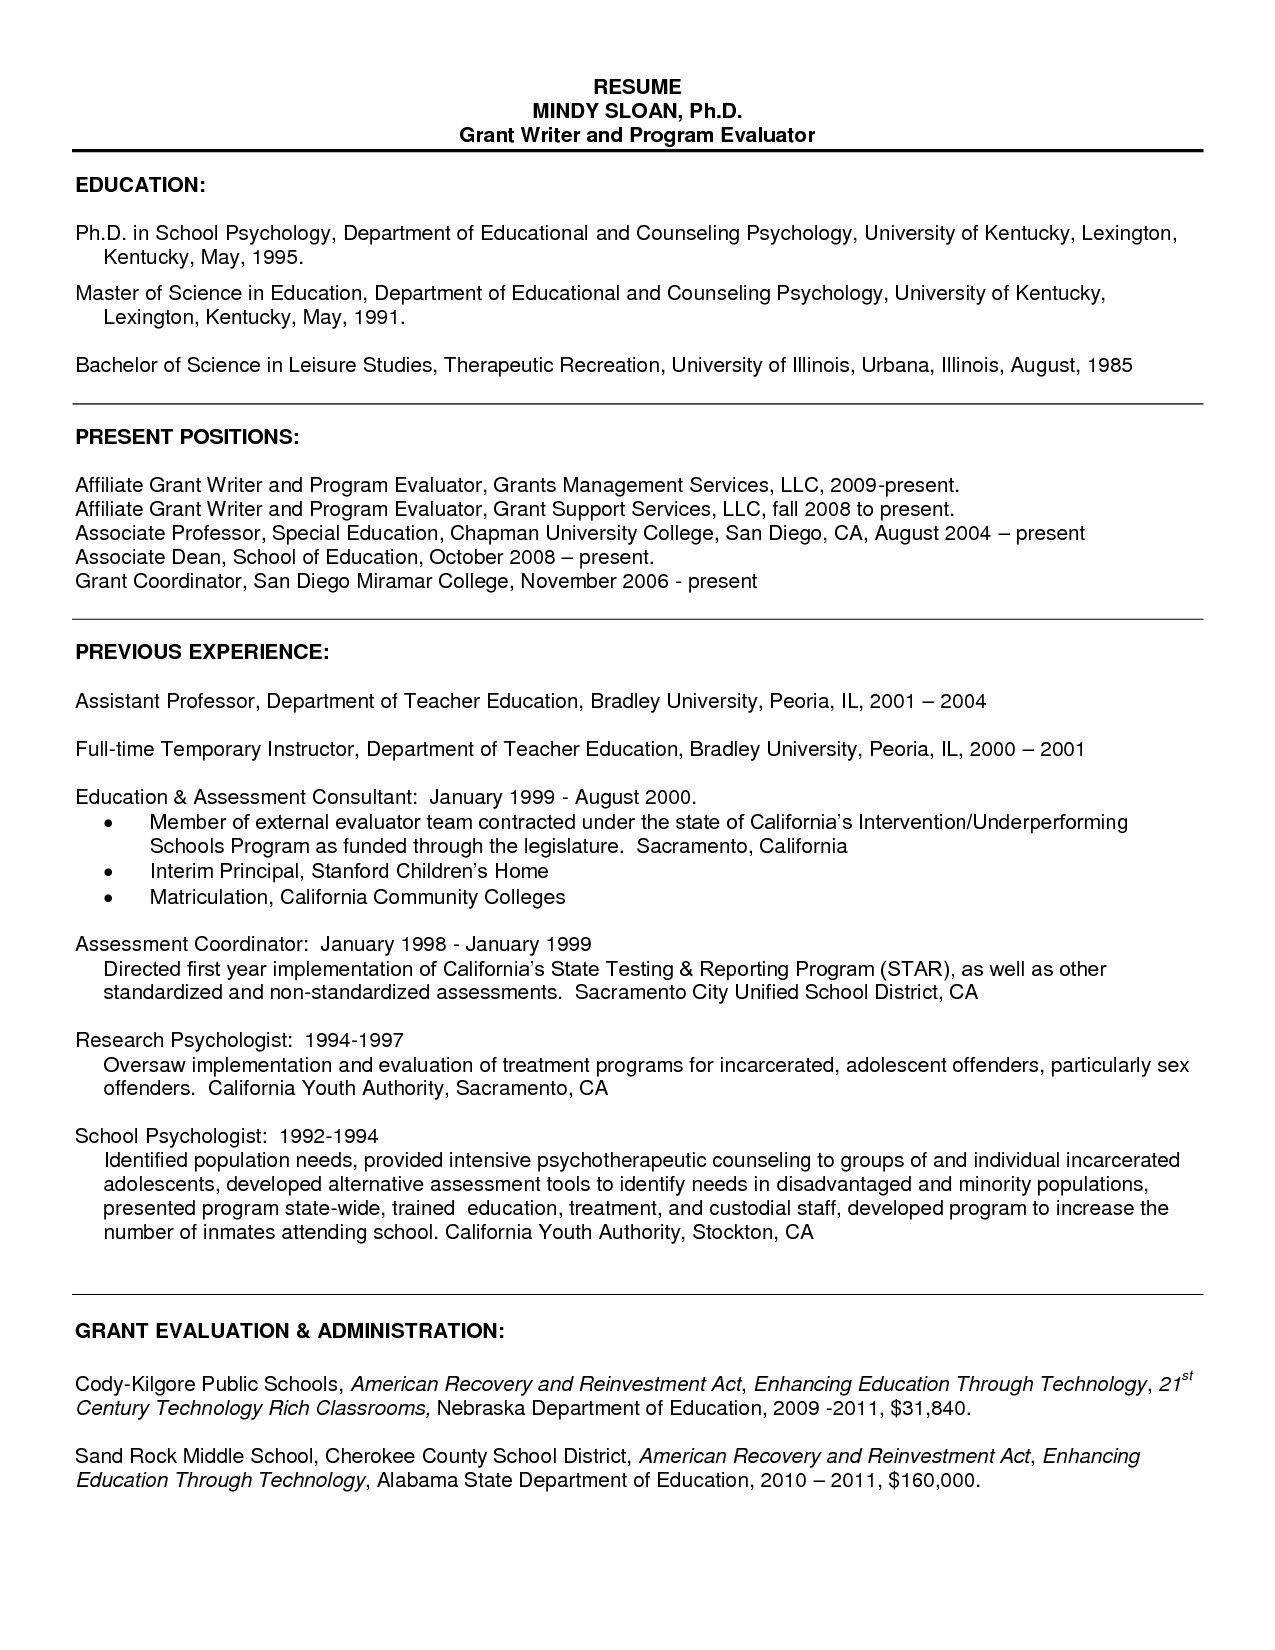 Resume Sample For Psychology Graduate - Resume Sample For Psychology ...